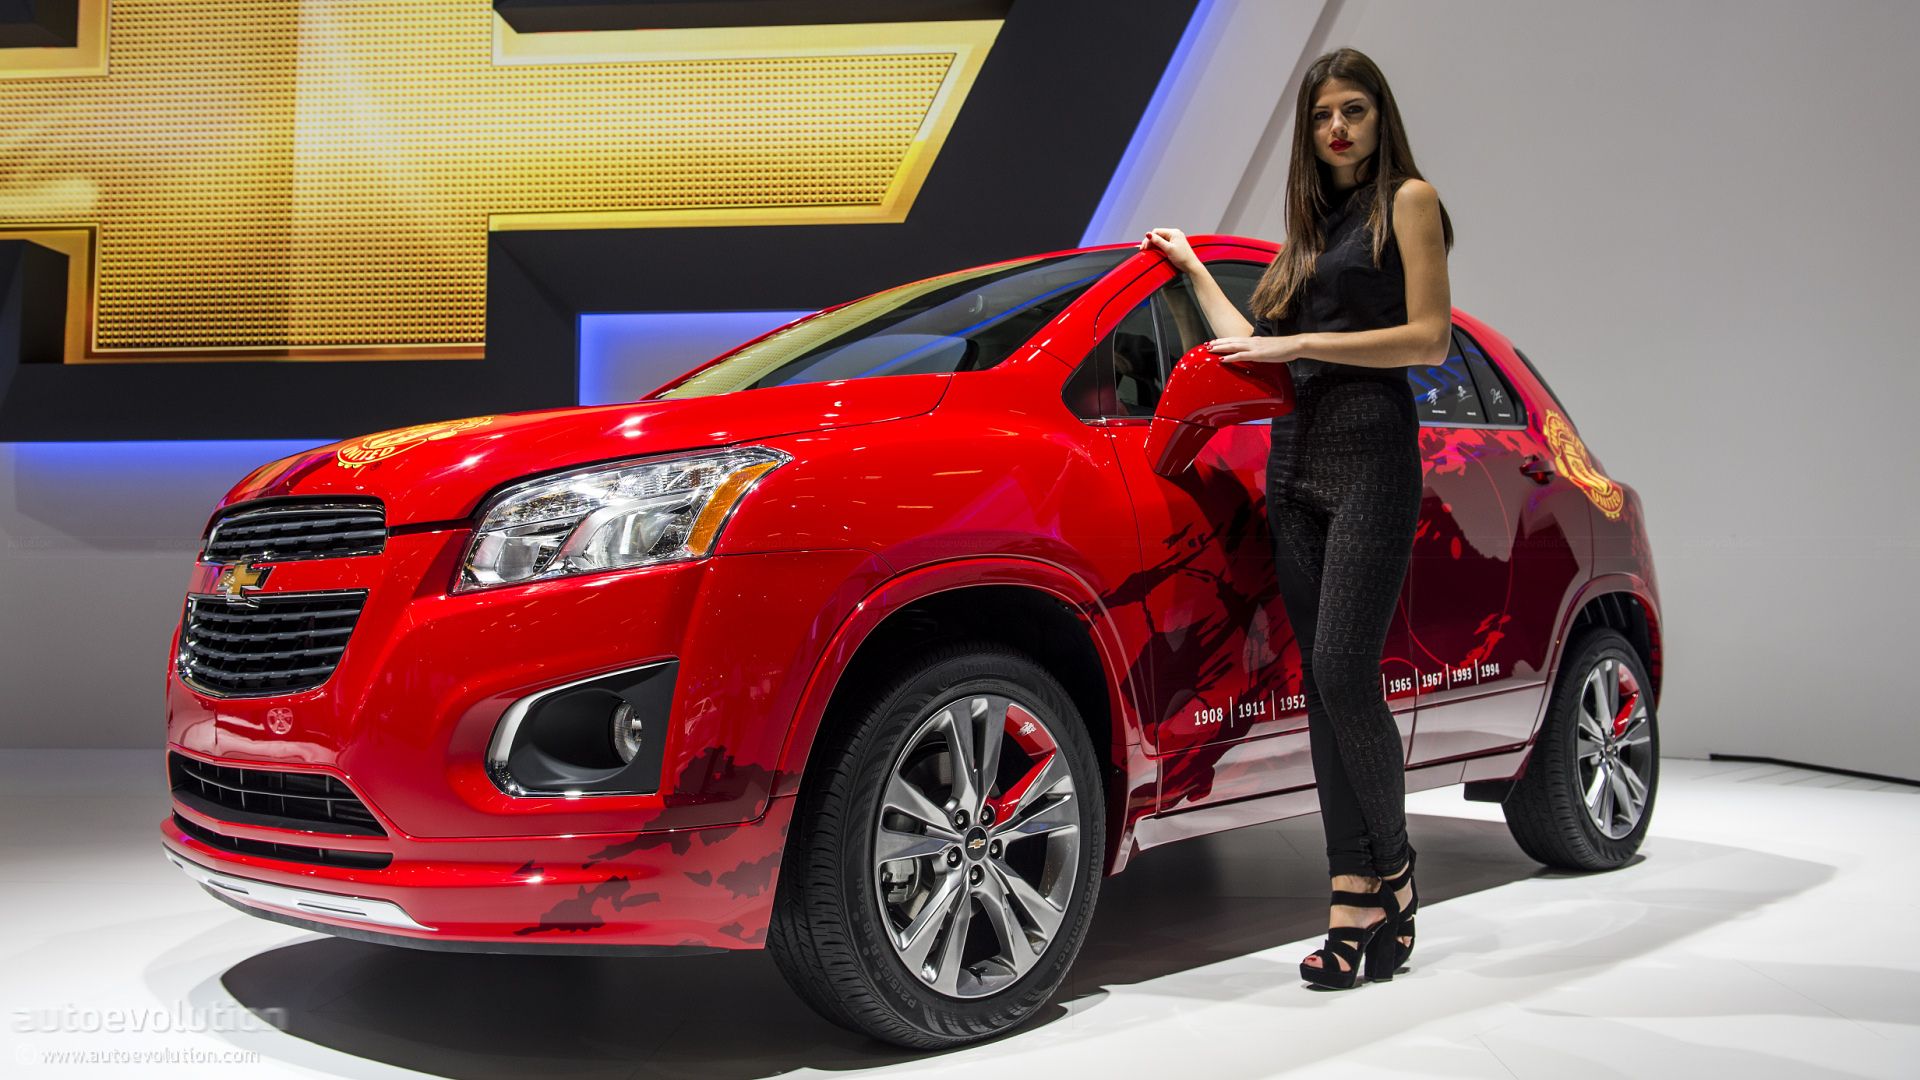 Paris 2012 Chevrolet Trax In Manchester United Theme Live